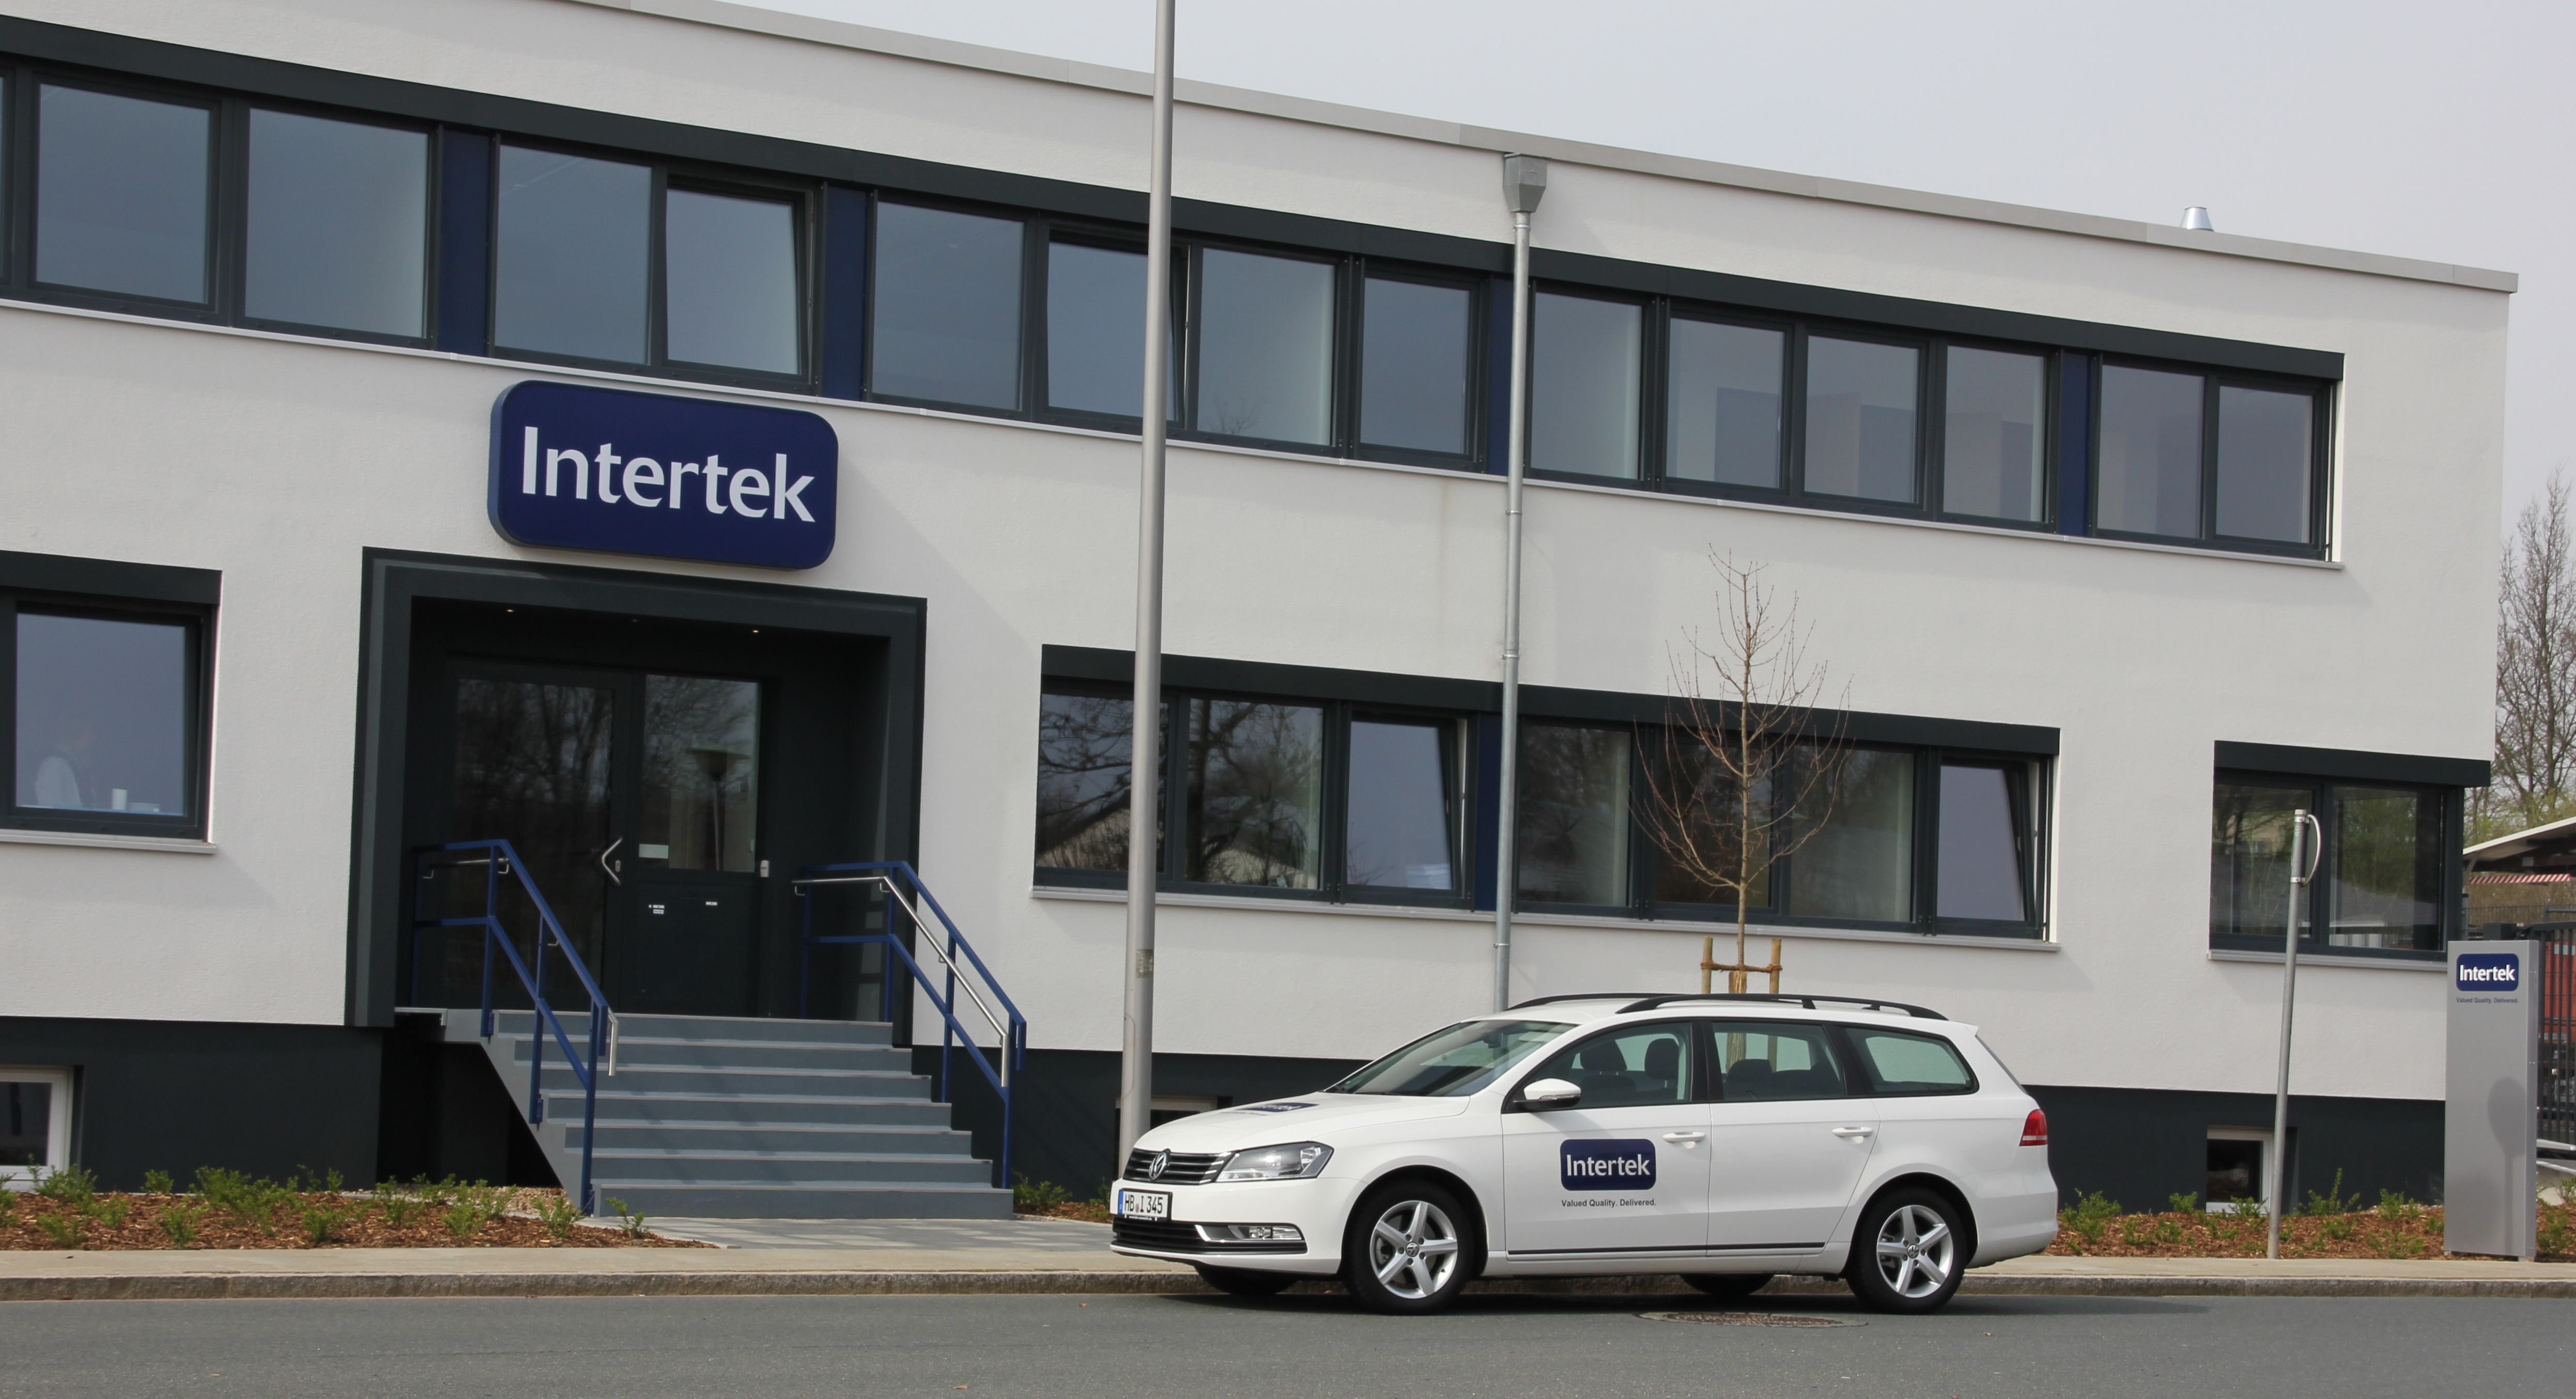 Intertek Expands its Global Food Services Footprint | Business Wire